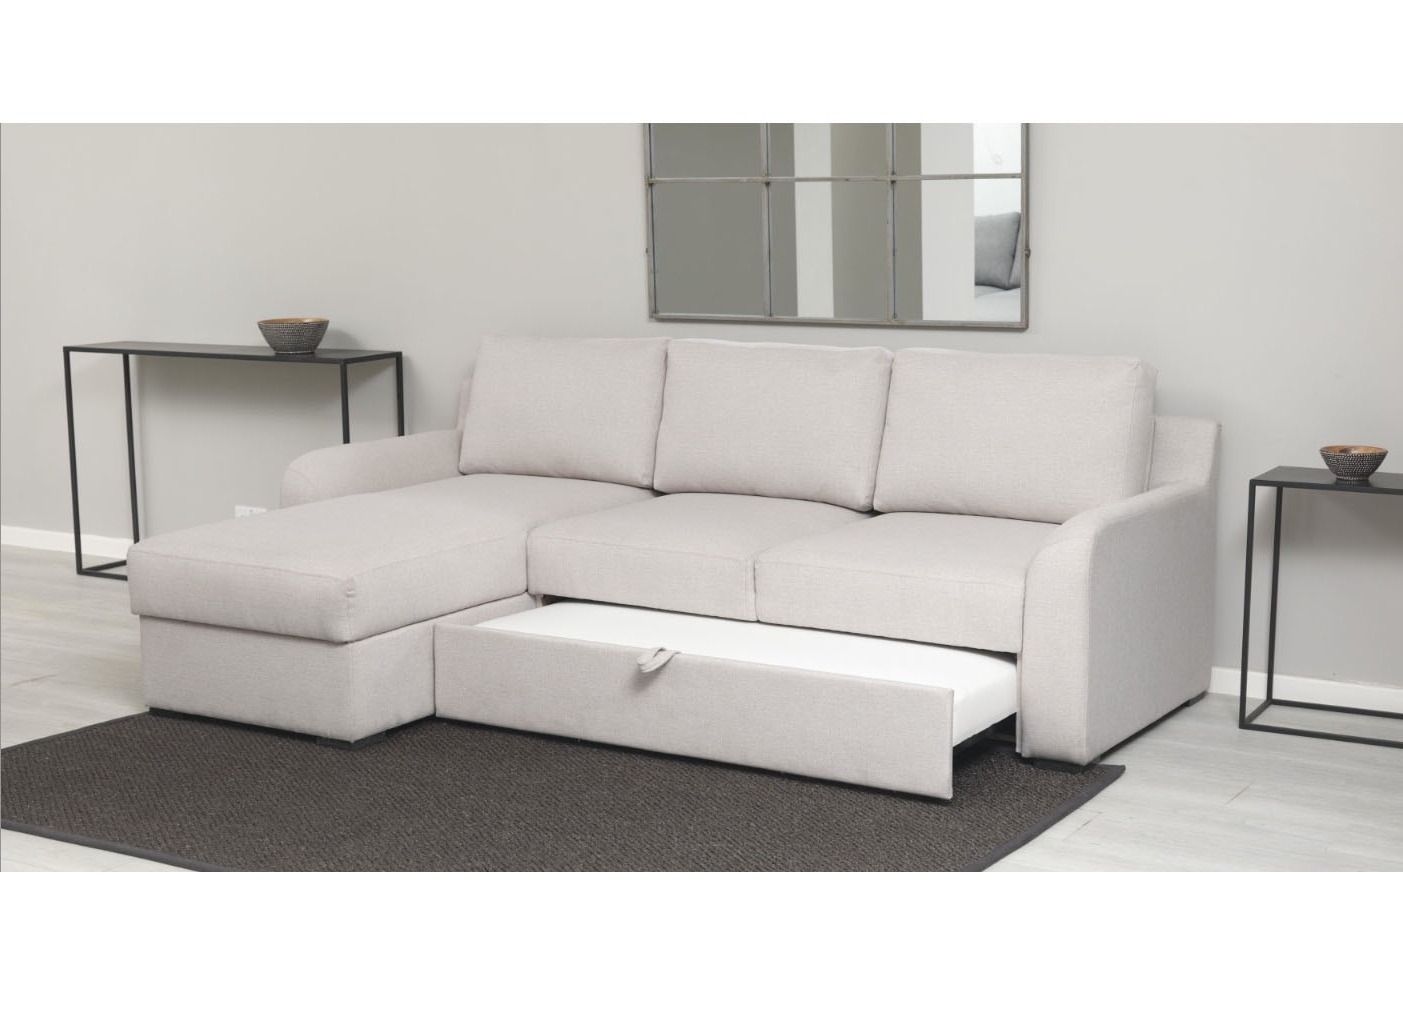 Corner Sofa Bed With Storage – Mforum With Trendy Chaise Sofa Beds With Storage (View 6 of 15)